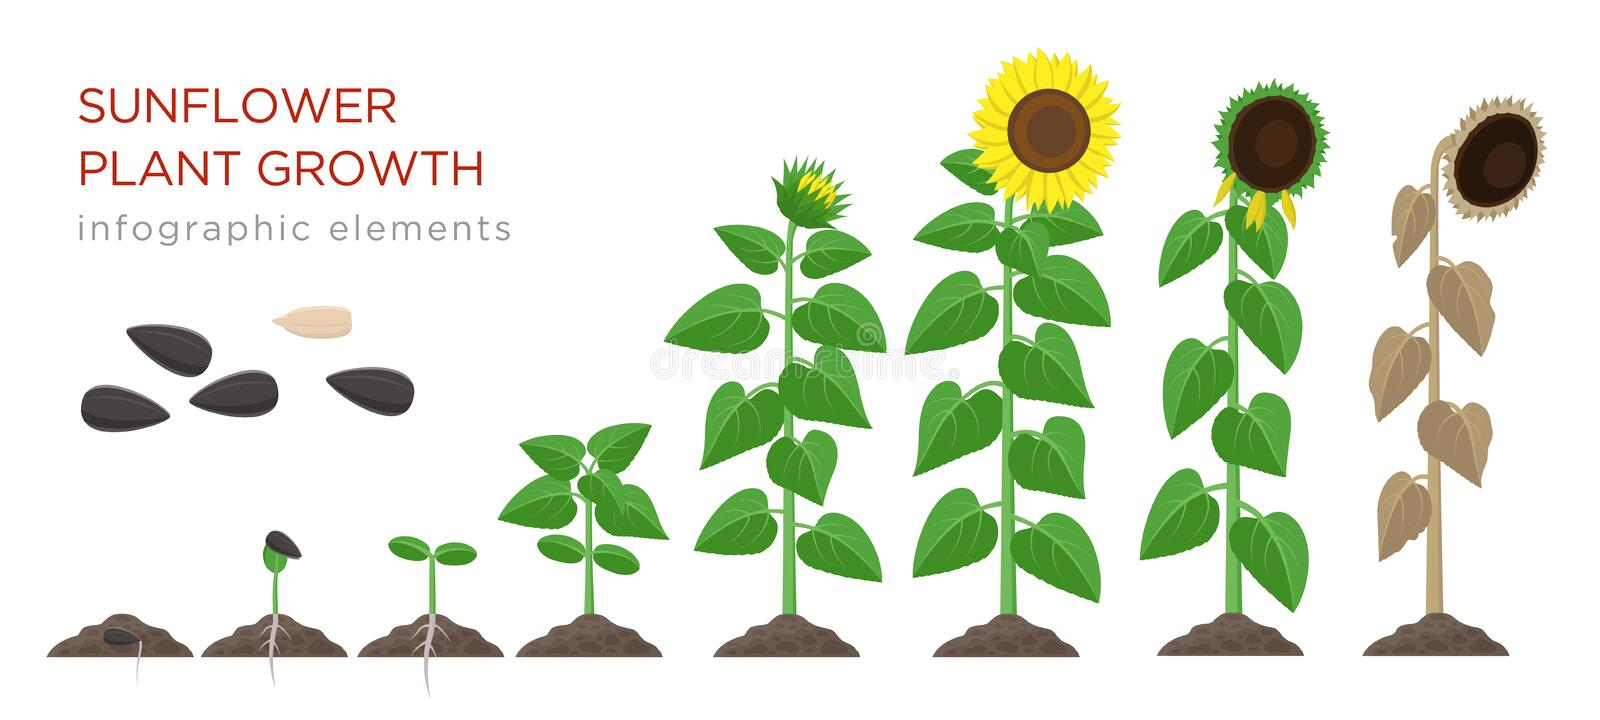 Sunflower growing process vector illustration flat design. Planting process of sunflowers. Growth stages from seed to vector illustration